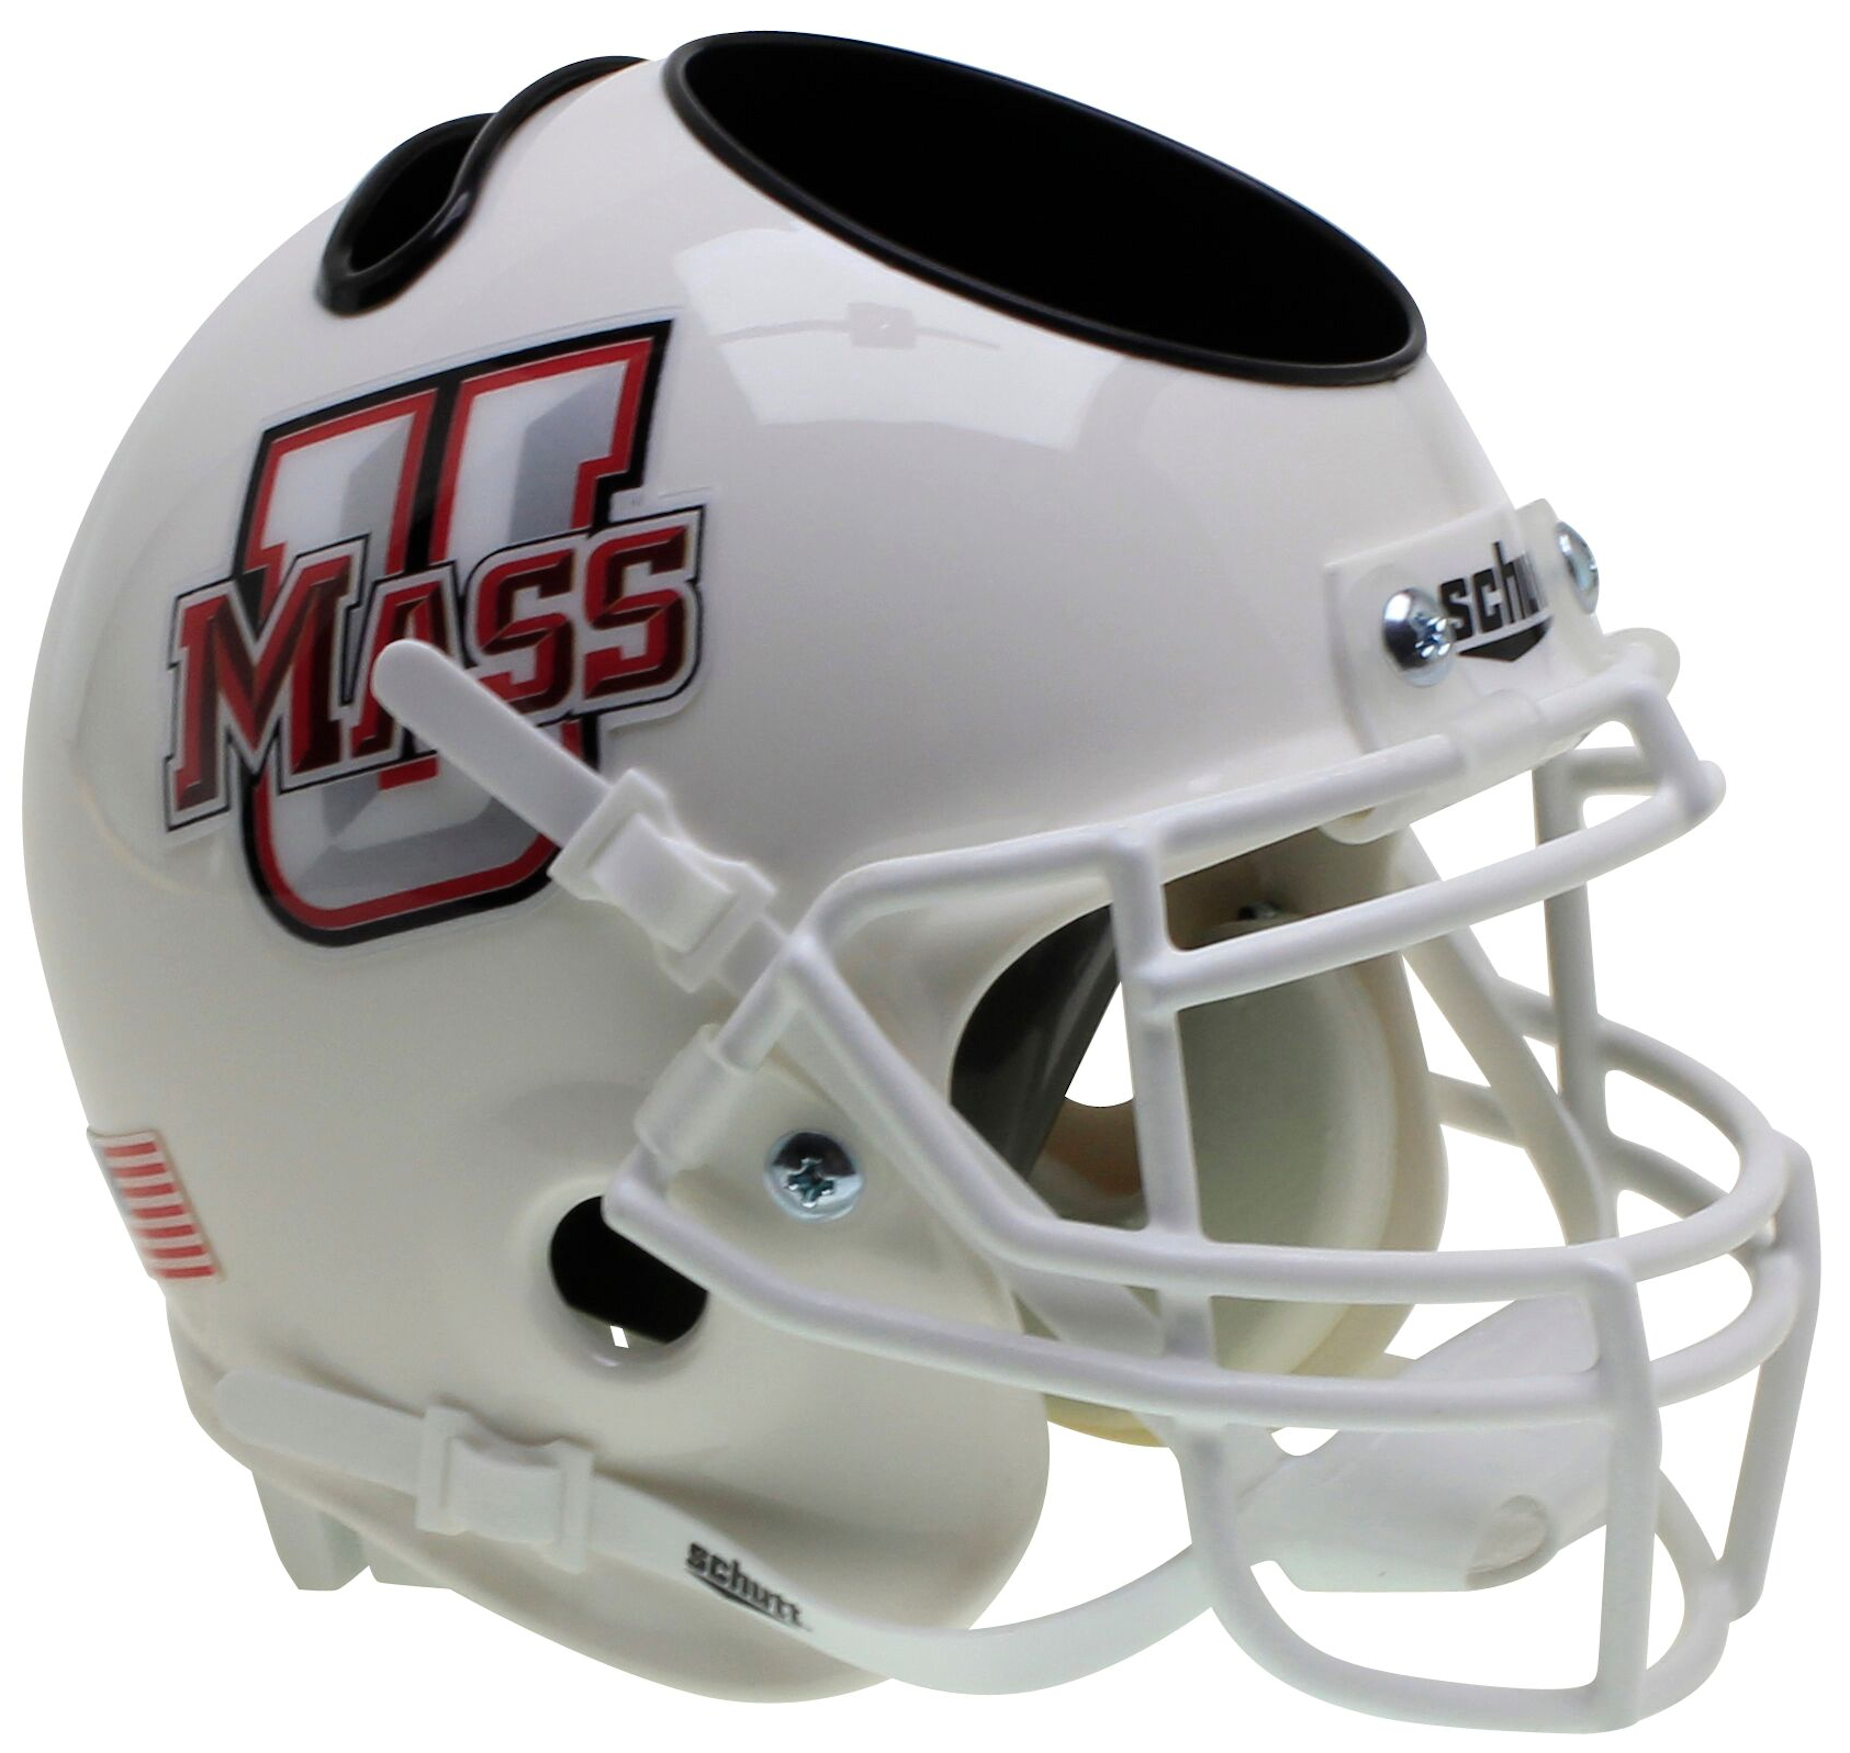 U Mass Minutemen Miniature Football Helmet Desk Caddy <B>White</B>